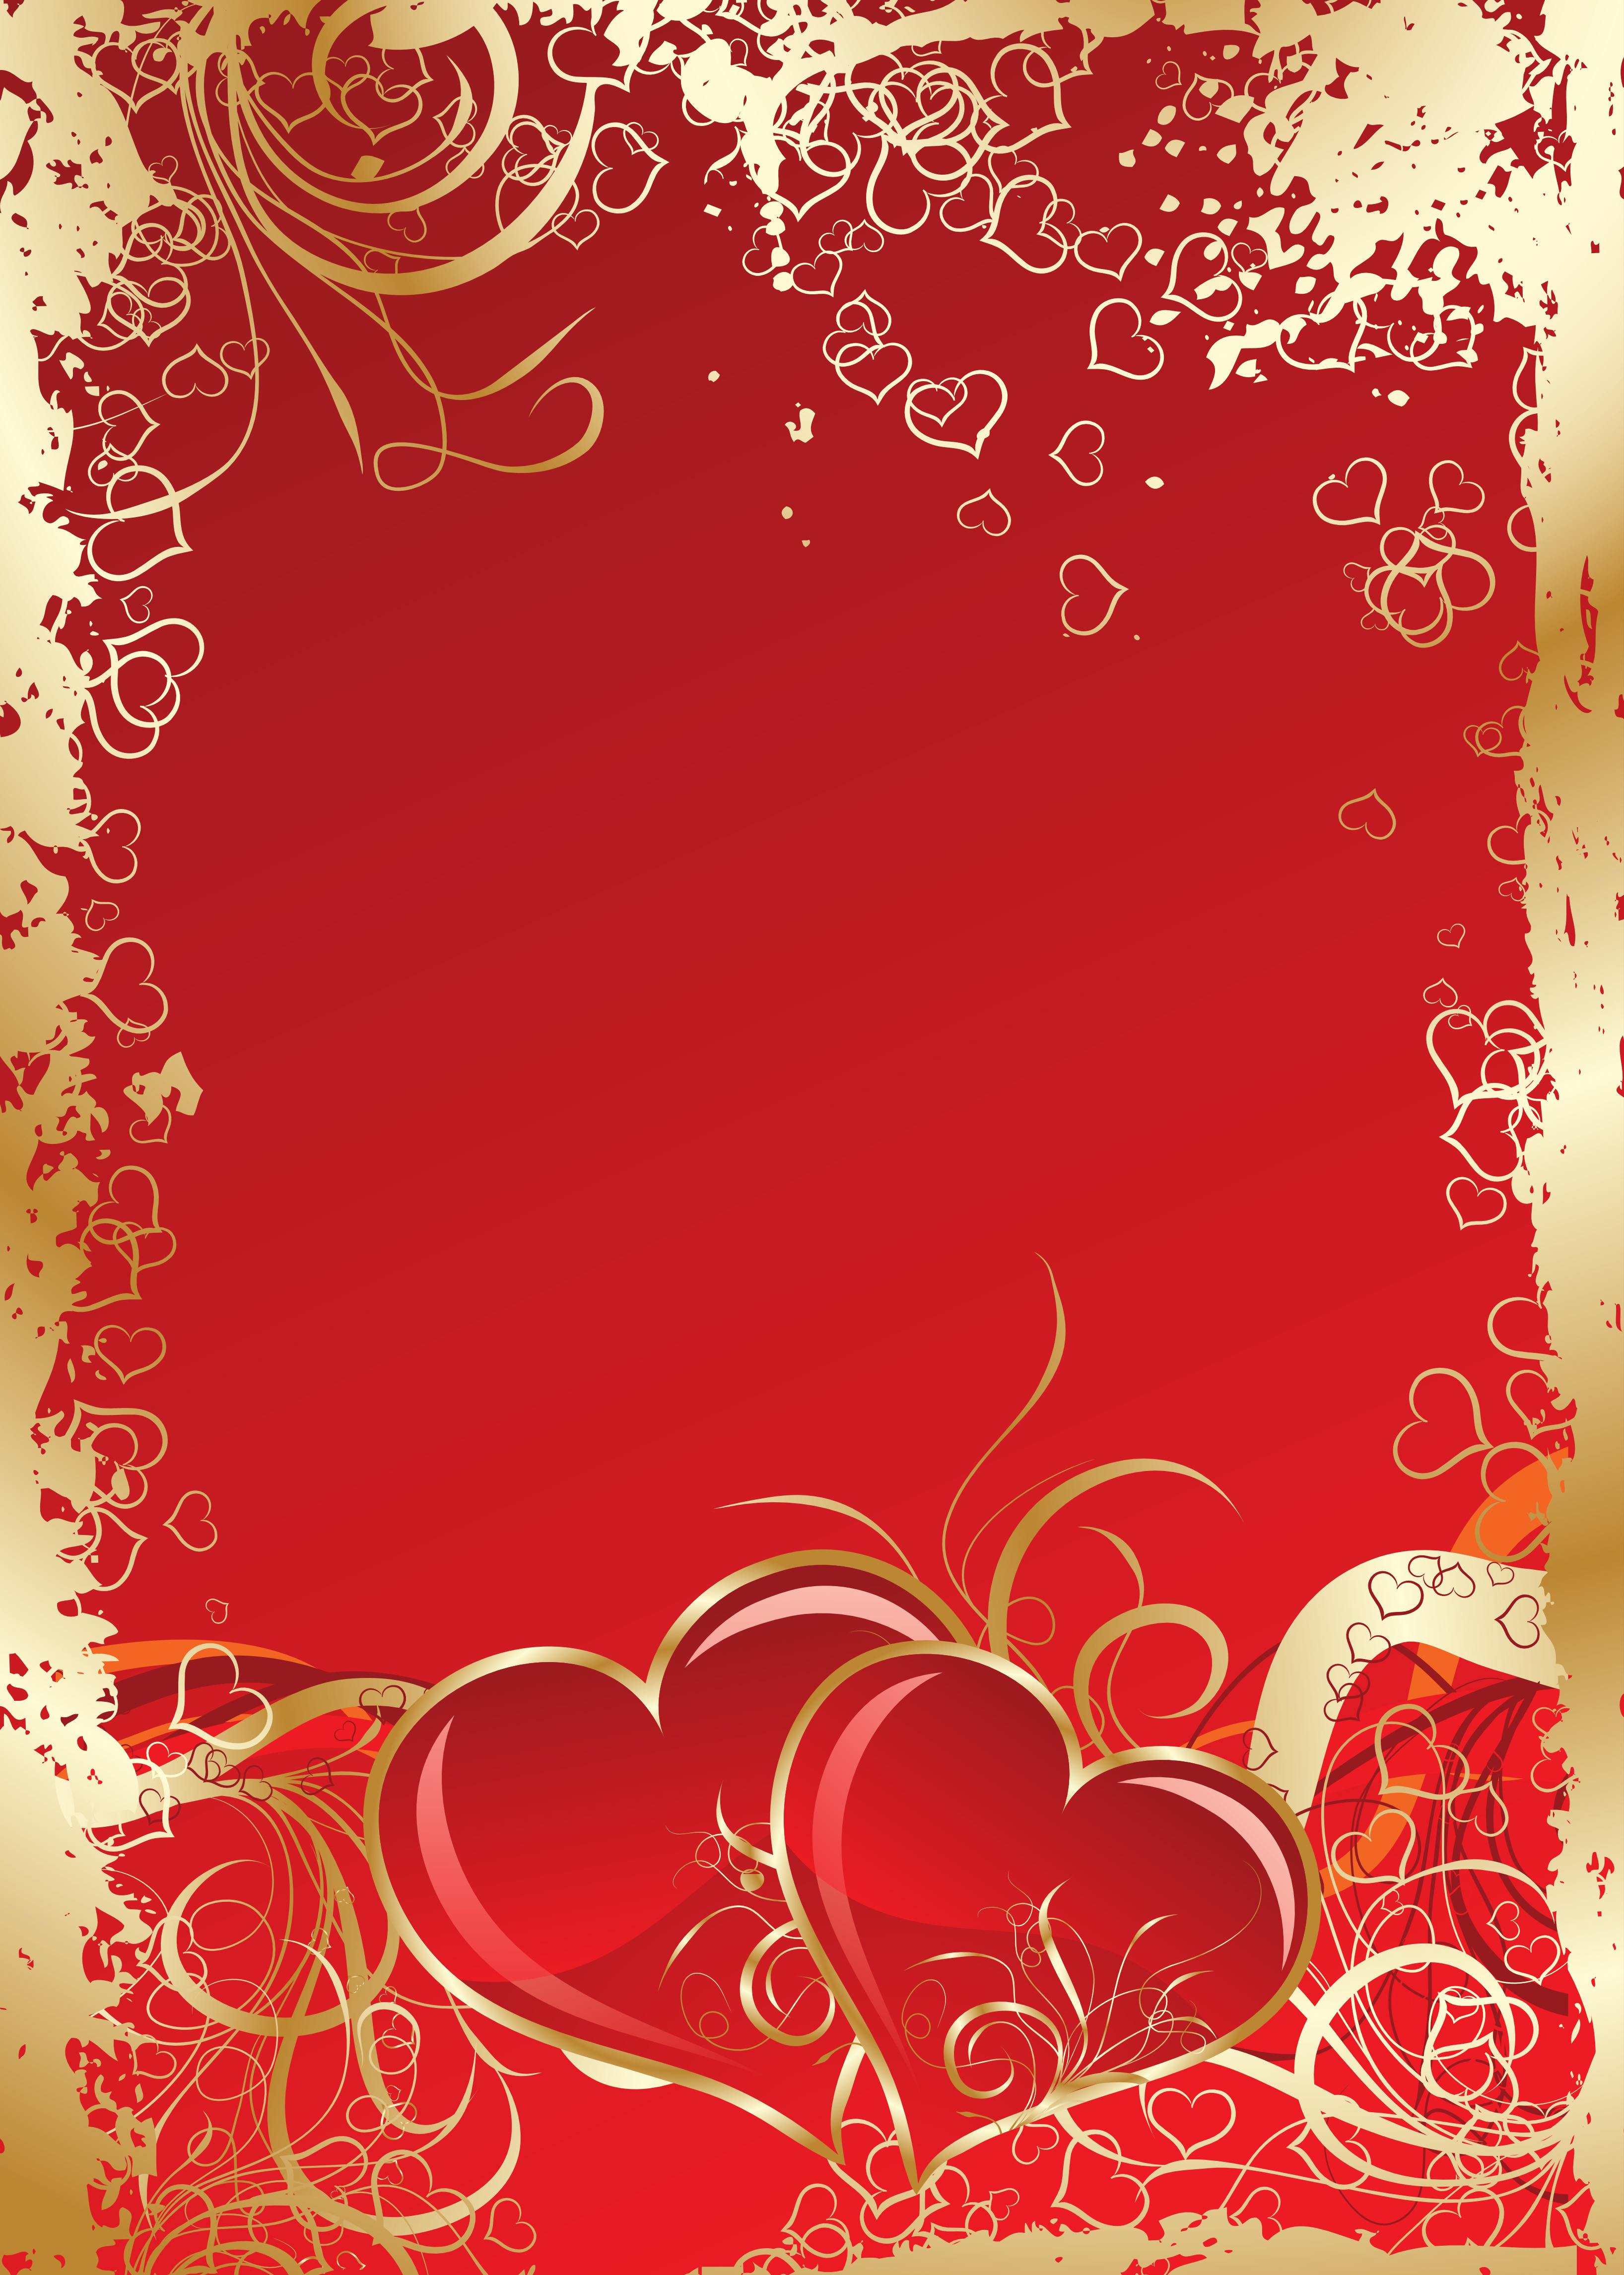 Festive Red Card, Red, Happy, Wedding Background Image for ...